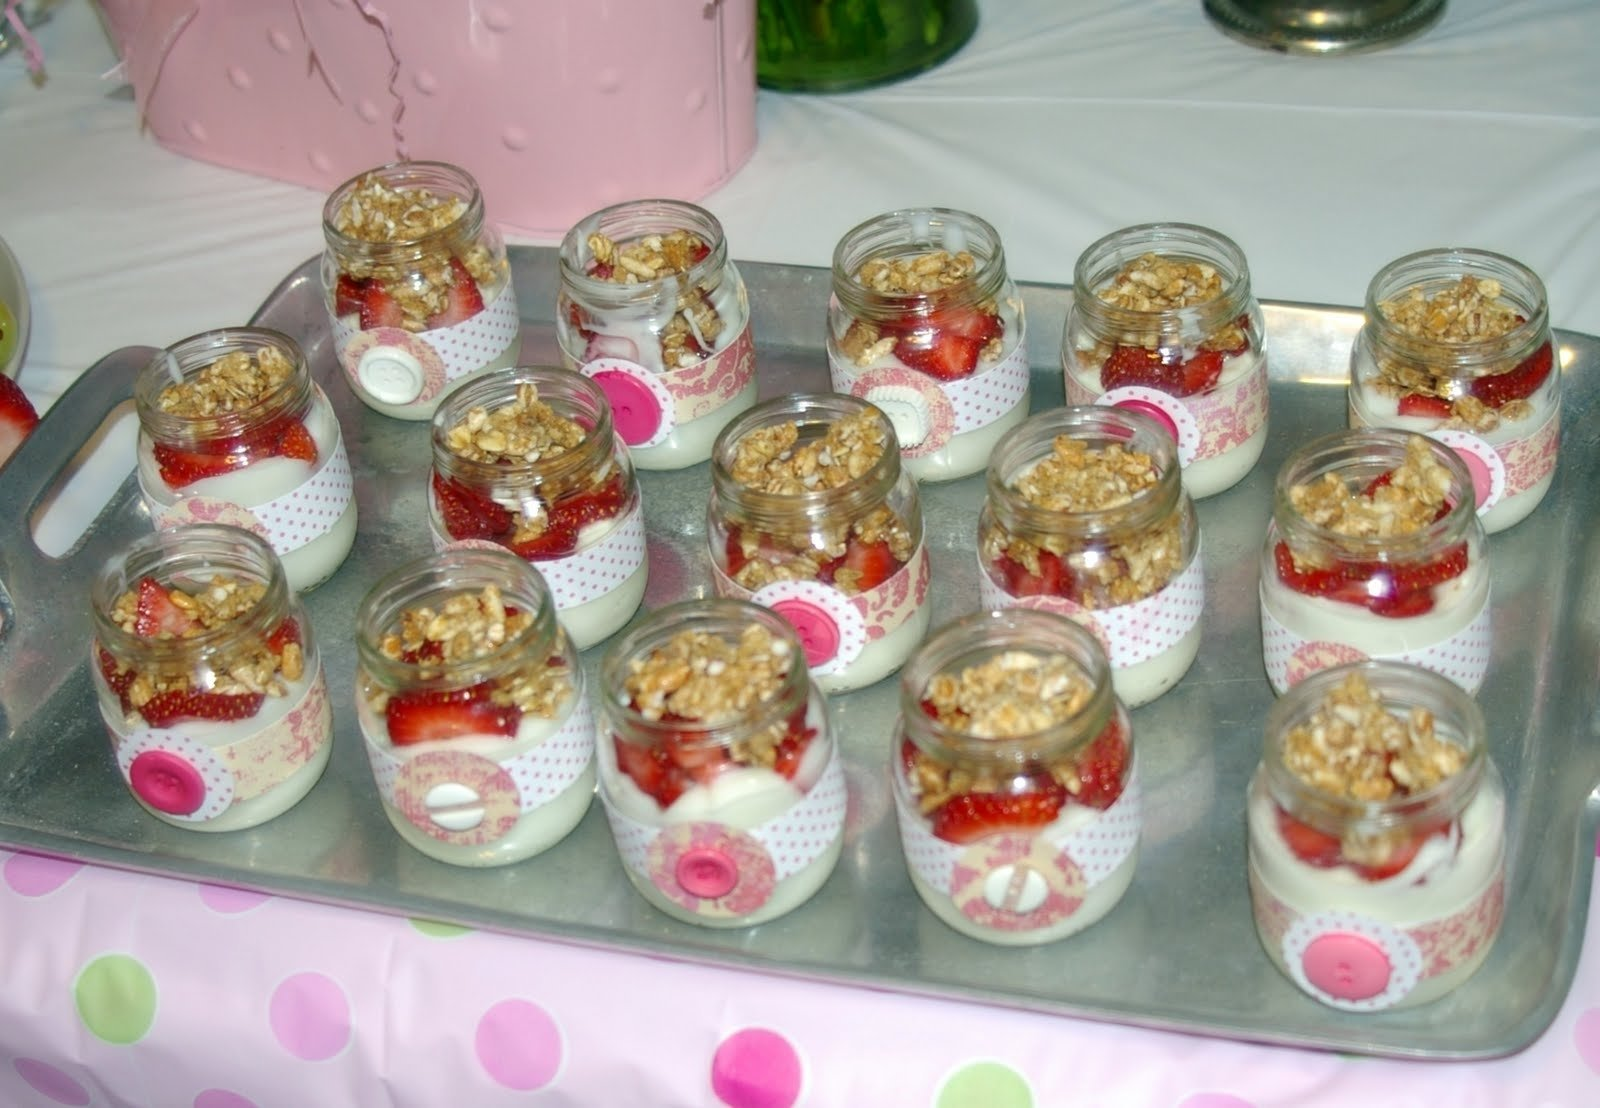 10 Unique Baby Shower Food Ideas For A Girl baby shower food ideas cute baby shower finger food ideas 3 2020